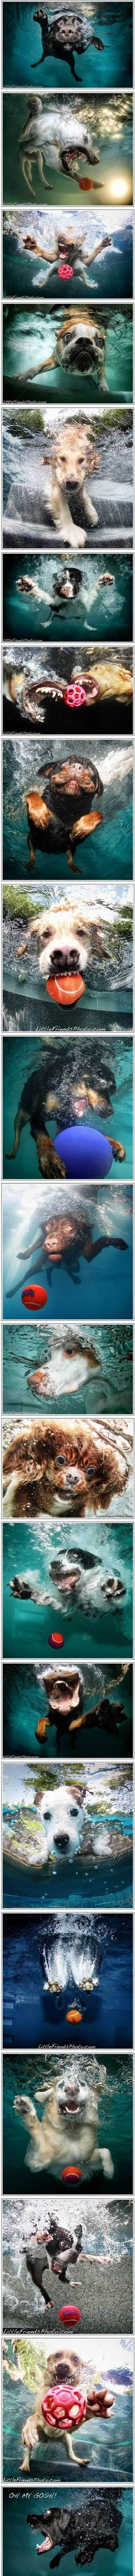 #dogs #pets #underwater #photography